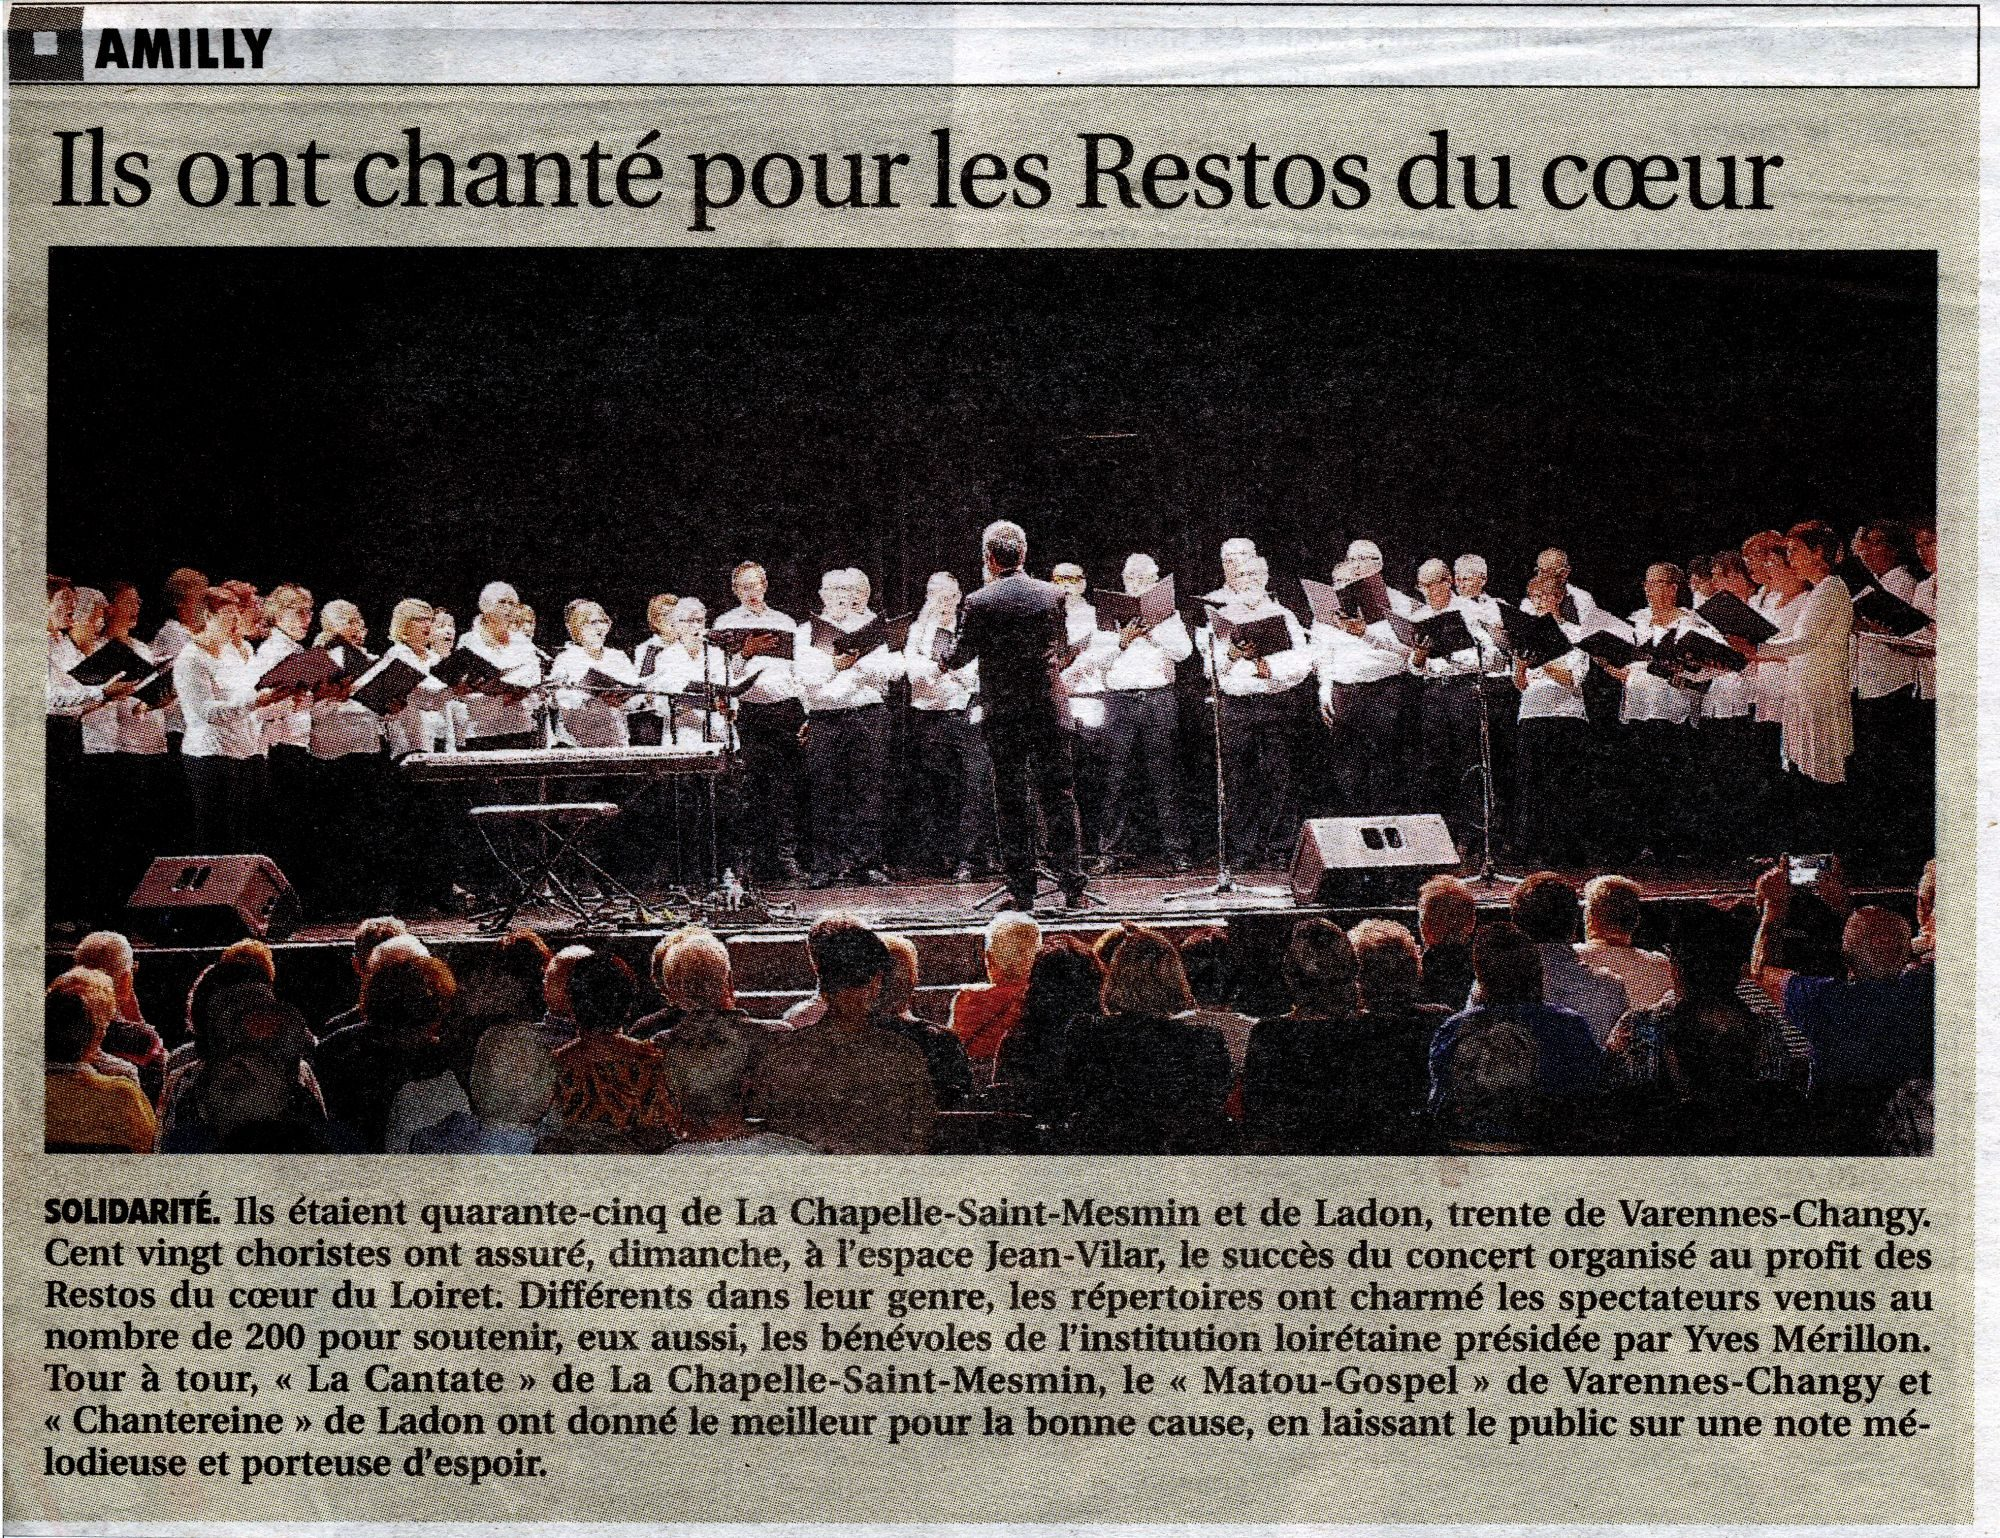 20181007_cantate_restoduchoeur_amilly